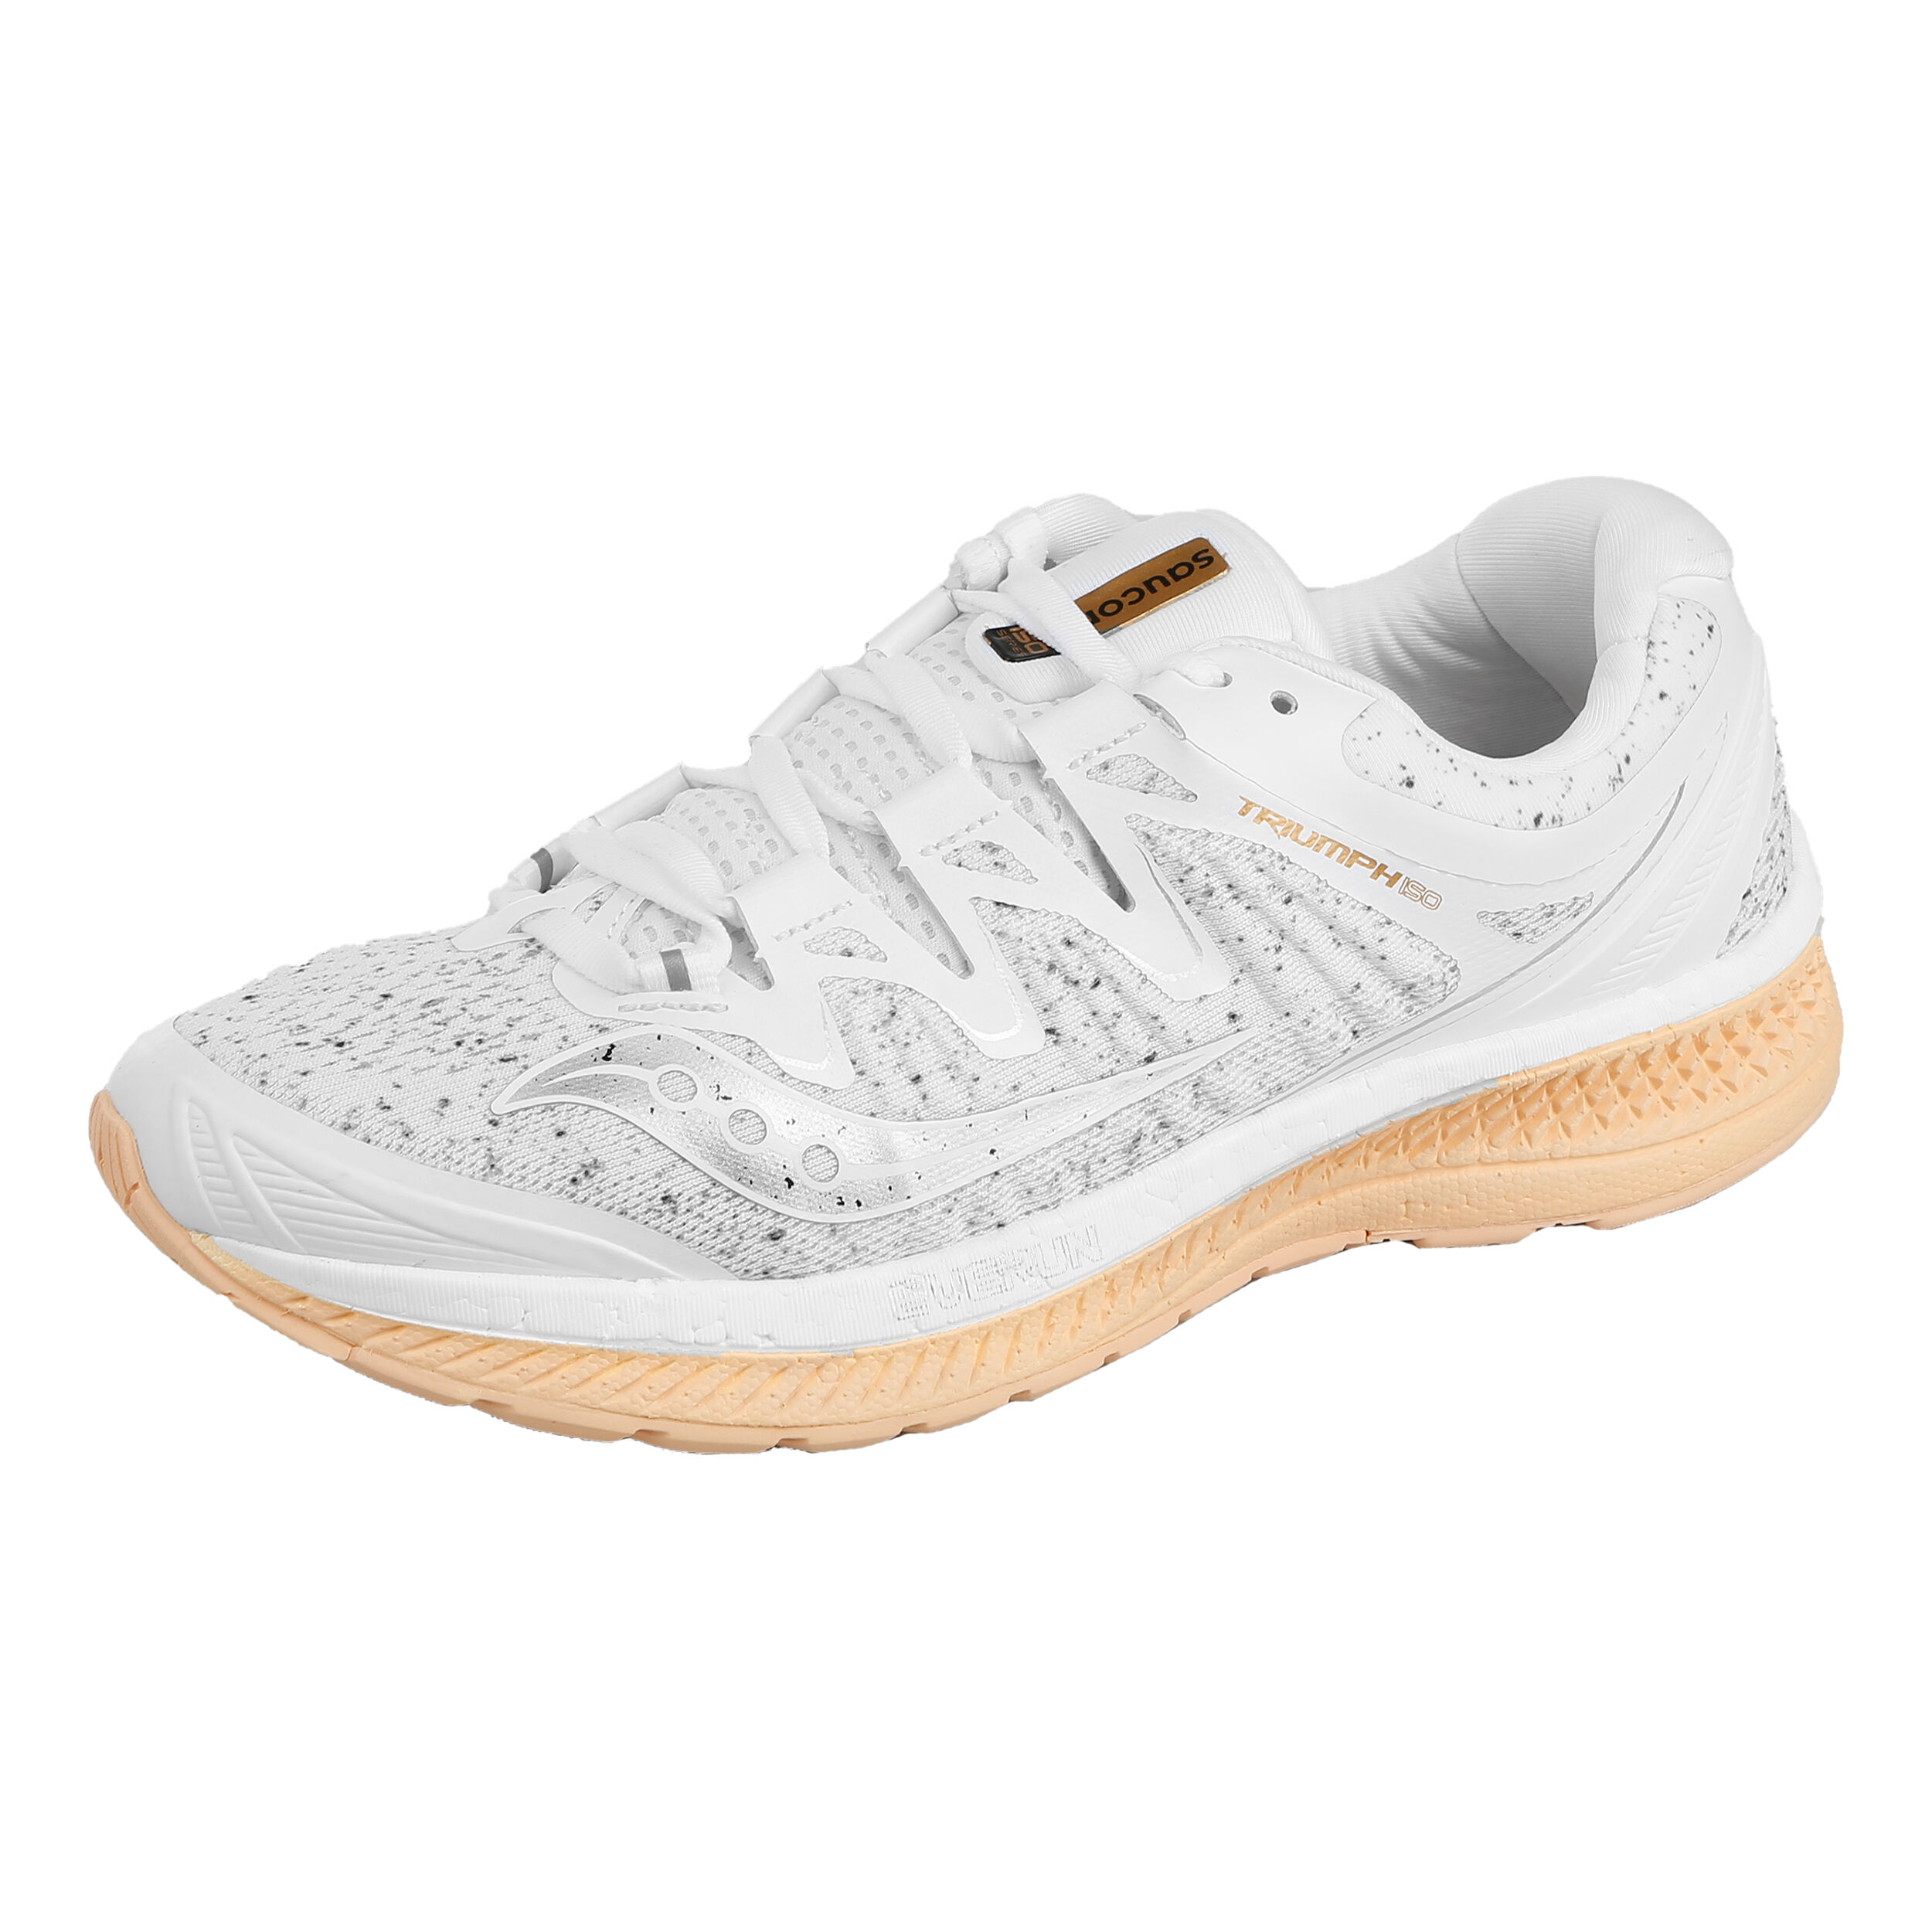 Buy Saucony Triumph Iso 4 Neutral Running Shoe (WhiteSilver